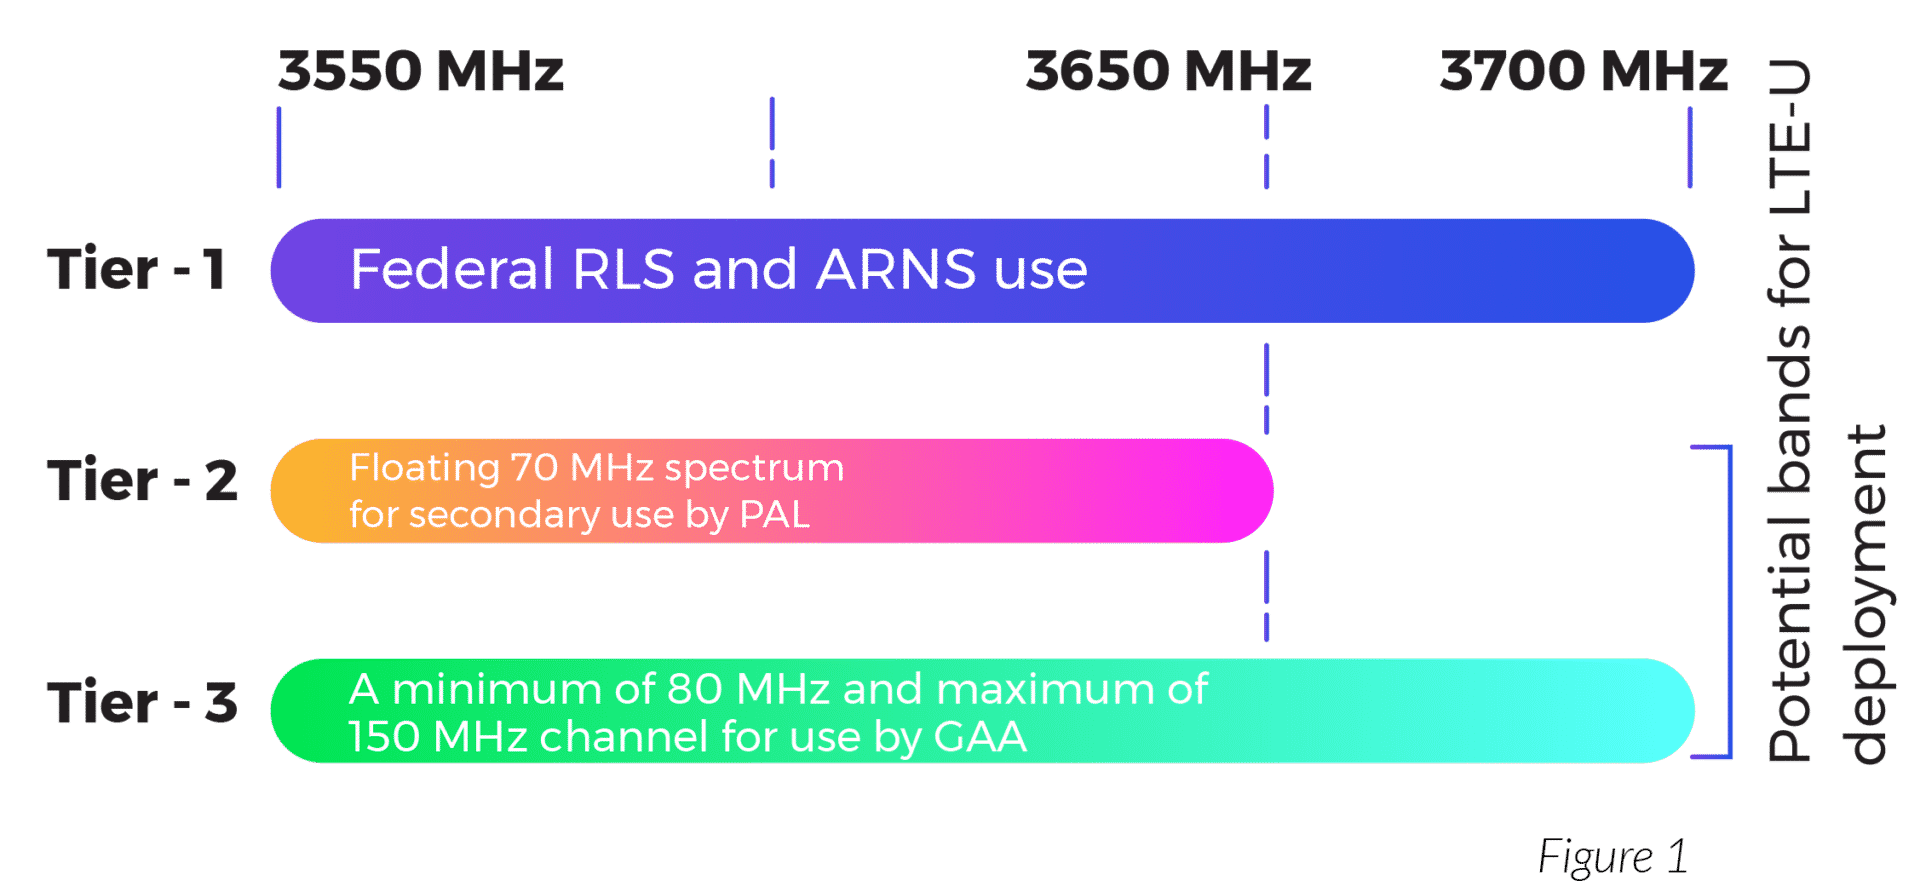 Leverege | What is CBRS? - LTE in 3 5 GHz Shared Spectrum